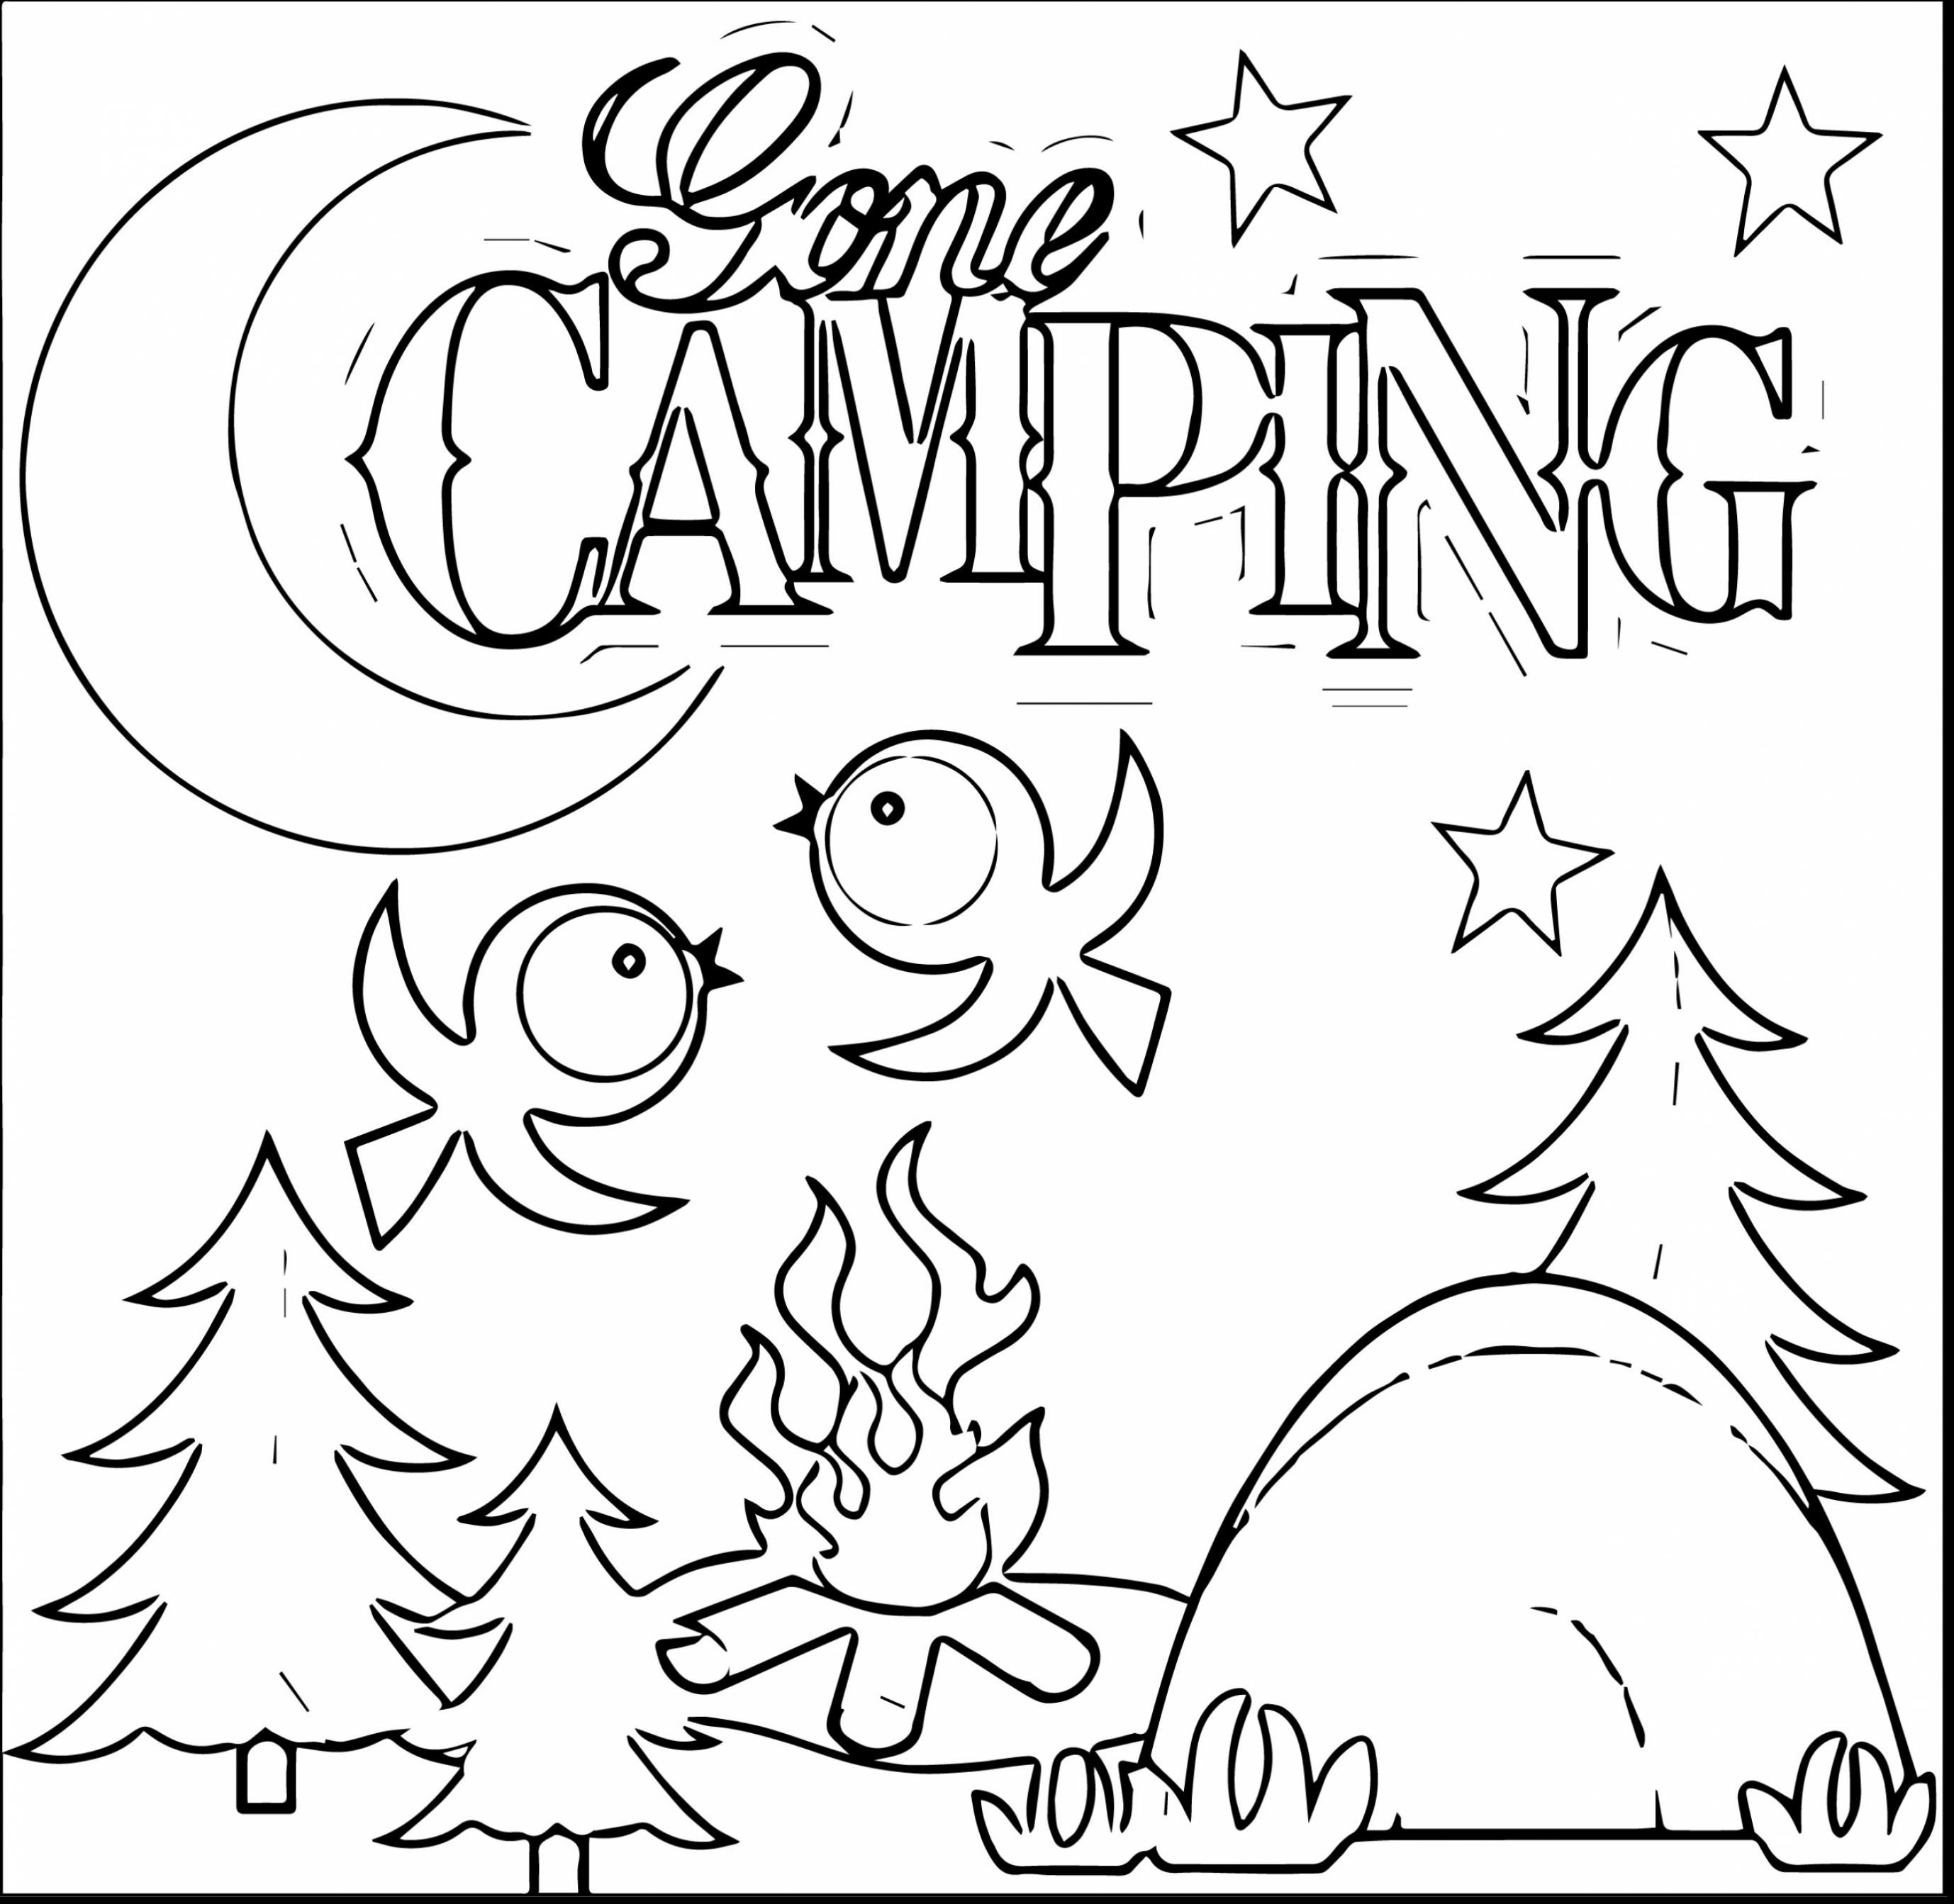 2756x2686 Camping Coloring Pages Freecolorngpages.co